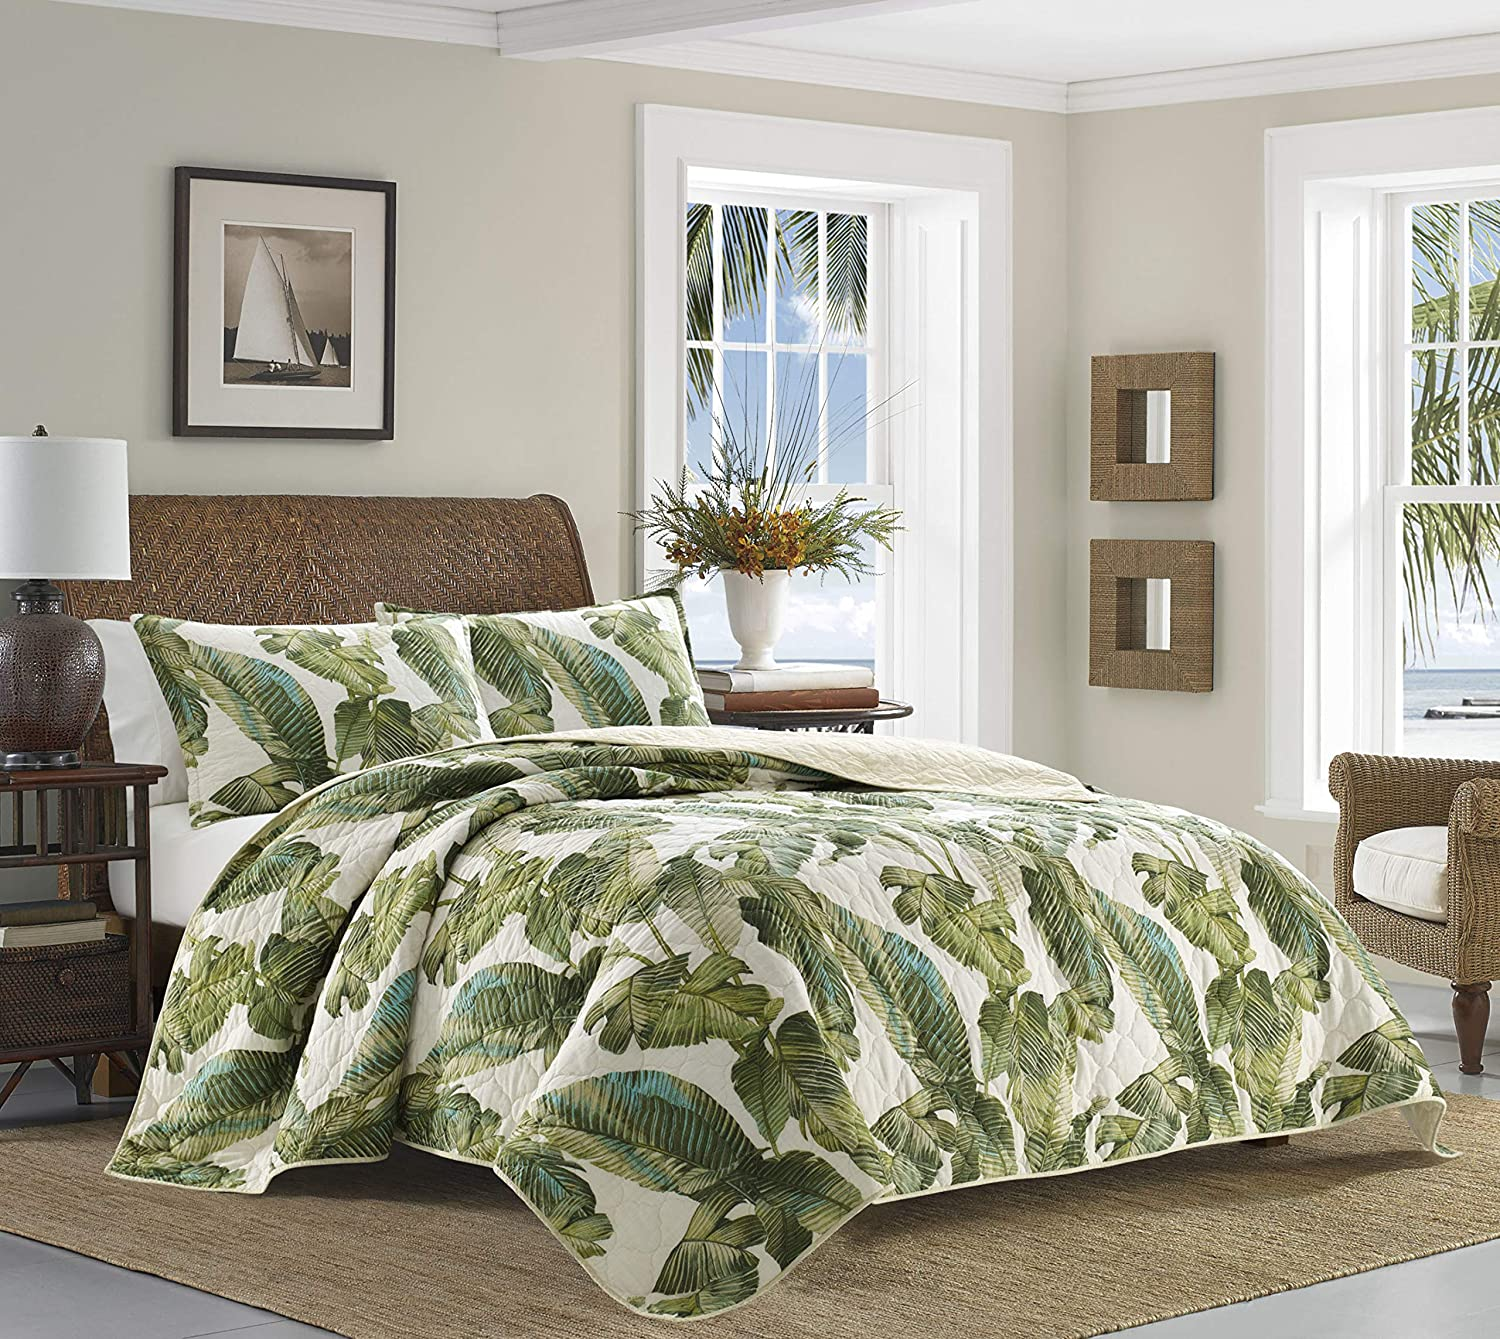 Tommy Bahama | Fiesta Palms Bedding Collection | Luxury Quality Ultra Soft Cotton Quilt Coverlet 2 Piece Set, Comfortable & Stylish Design for Home Décor, Twin, Green